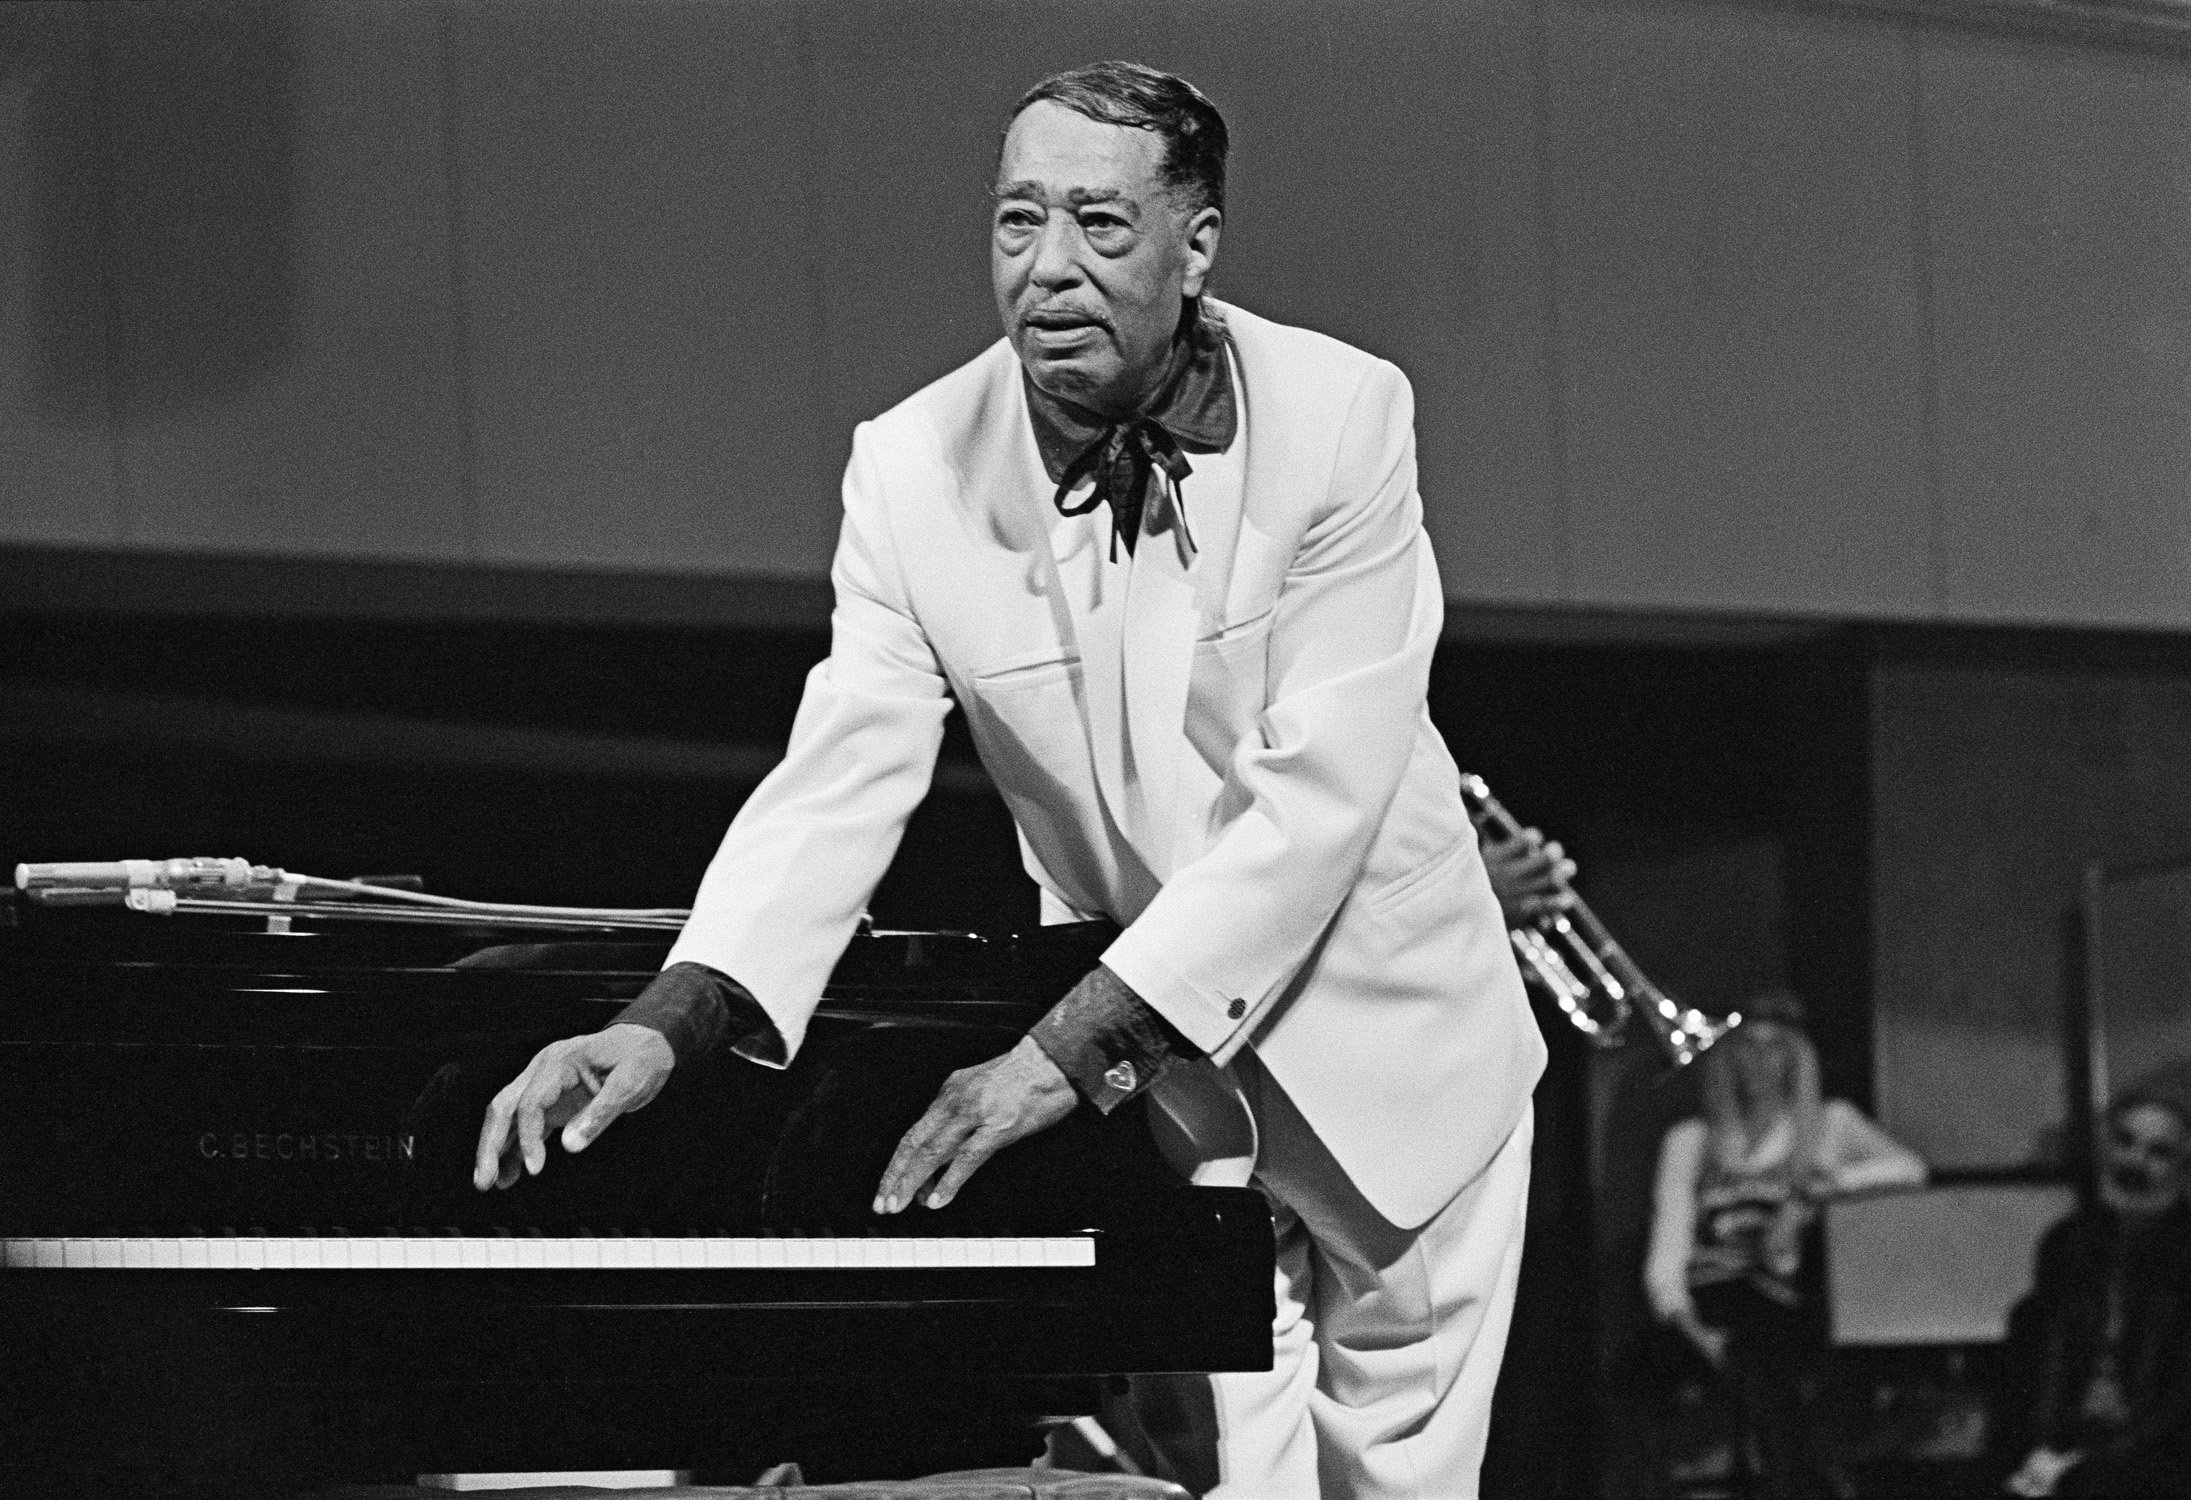 Duke Ellington performs on satge in Berlin, Germany, 1970 | Photo: Getty Images